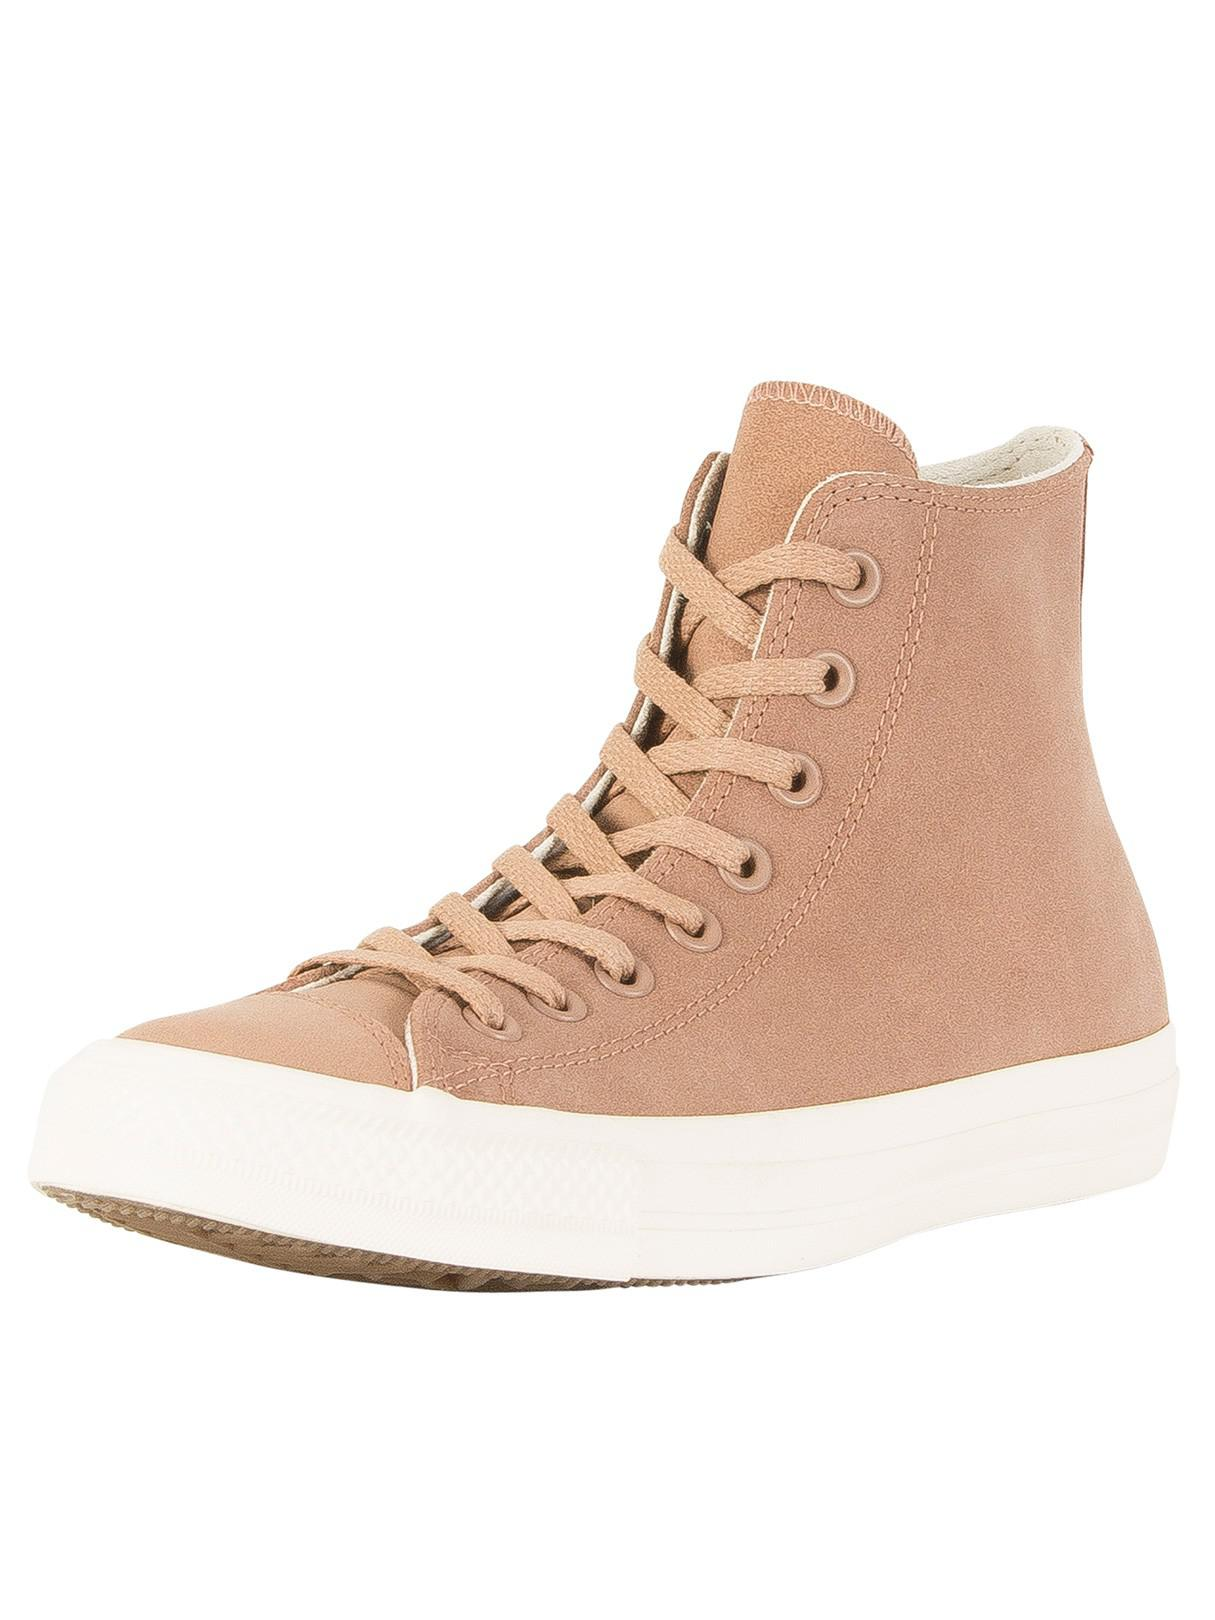 2e7005add80 Lyst - Converse Desert driftwood Ct All Star Leather Hi Trainers in ...